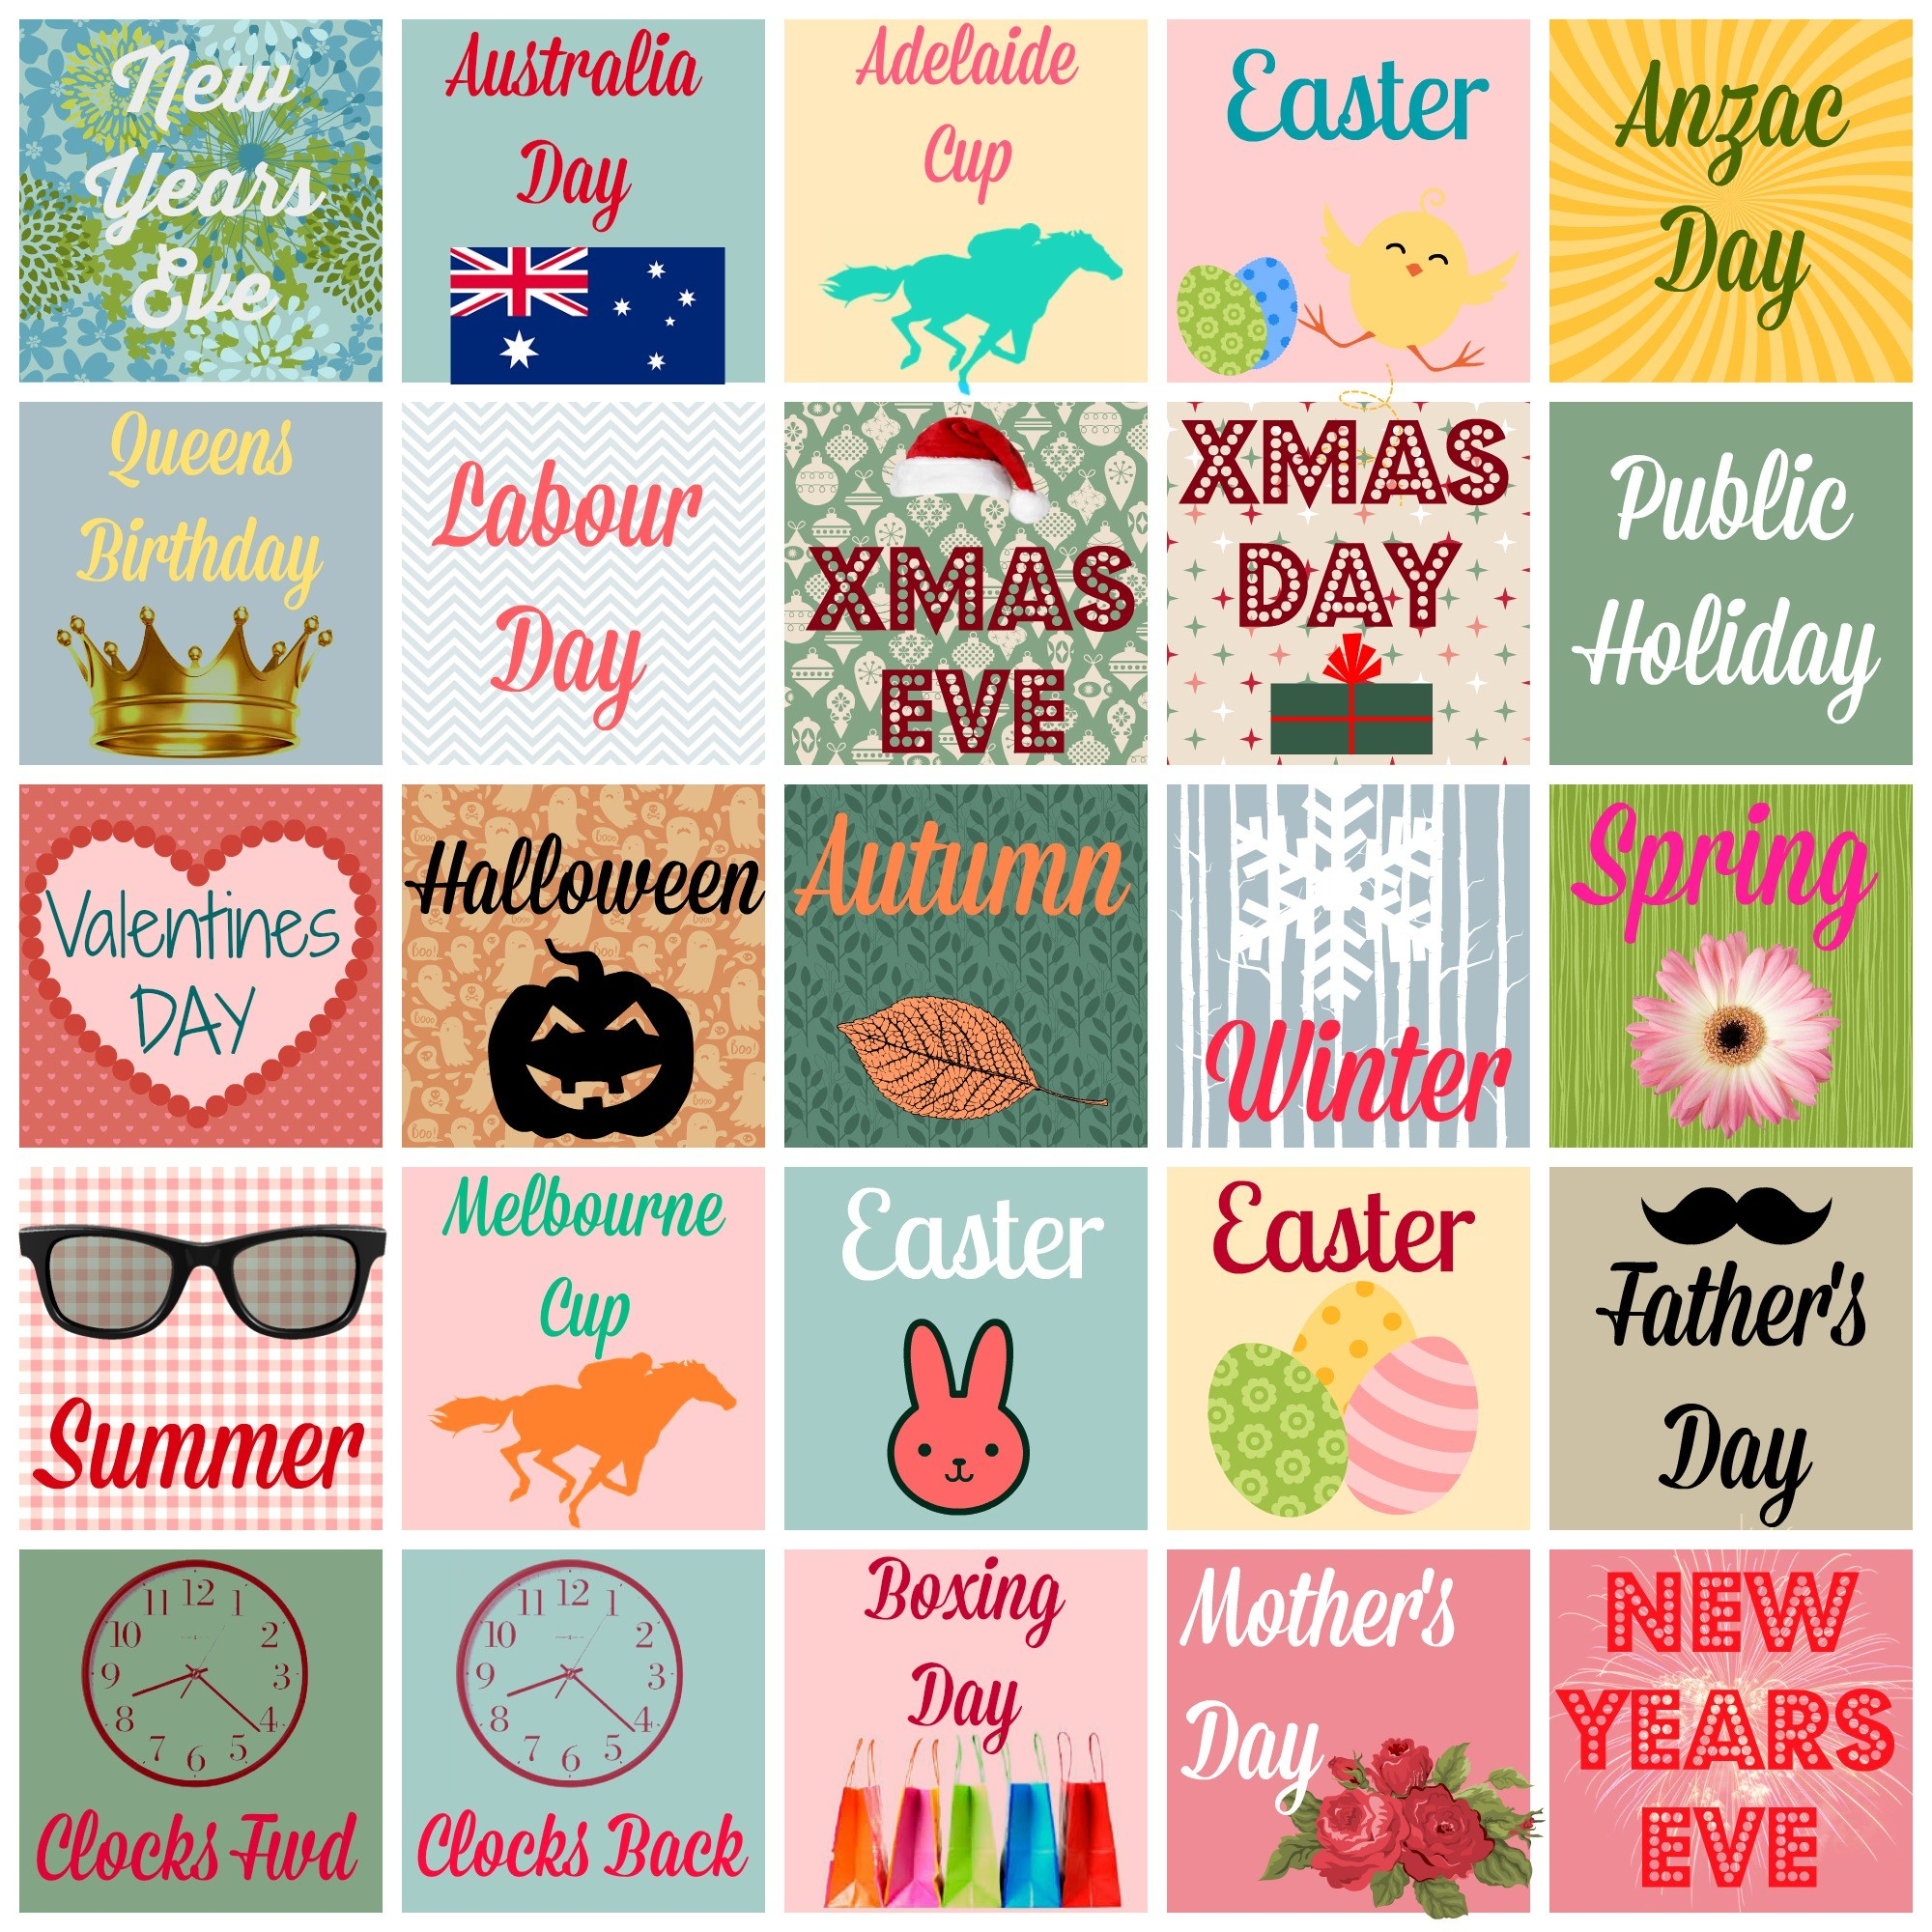 8 Best Images of Free Printable Holiday Planner Stickers ...